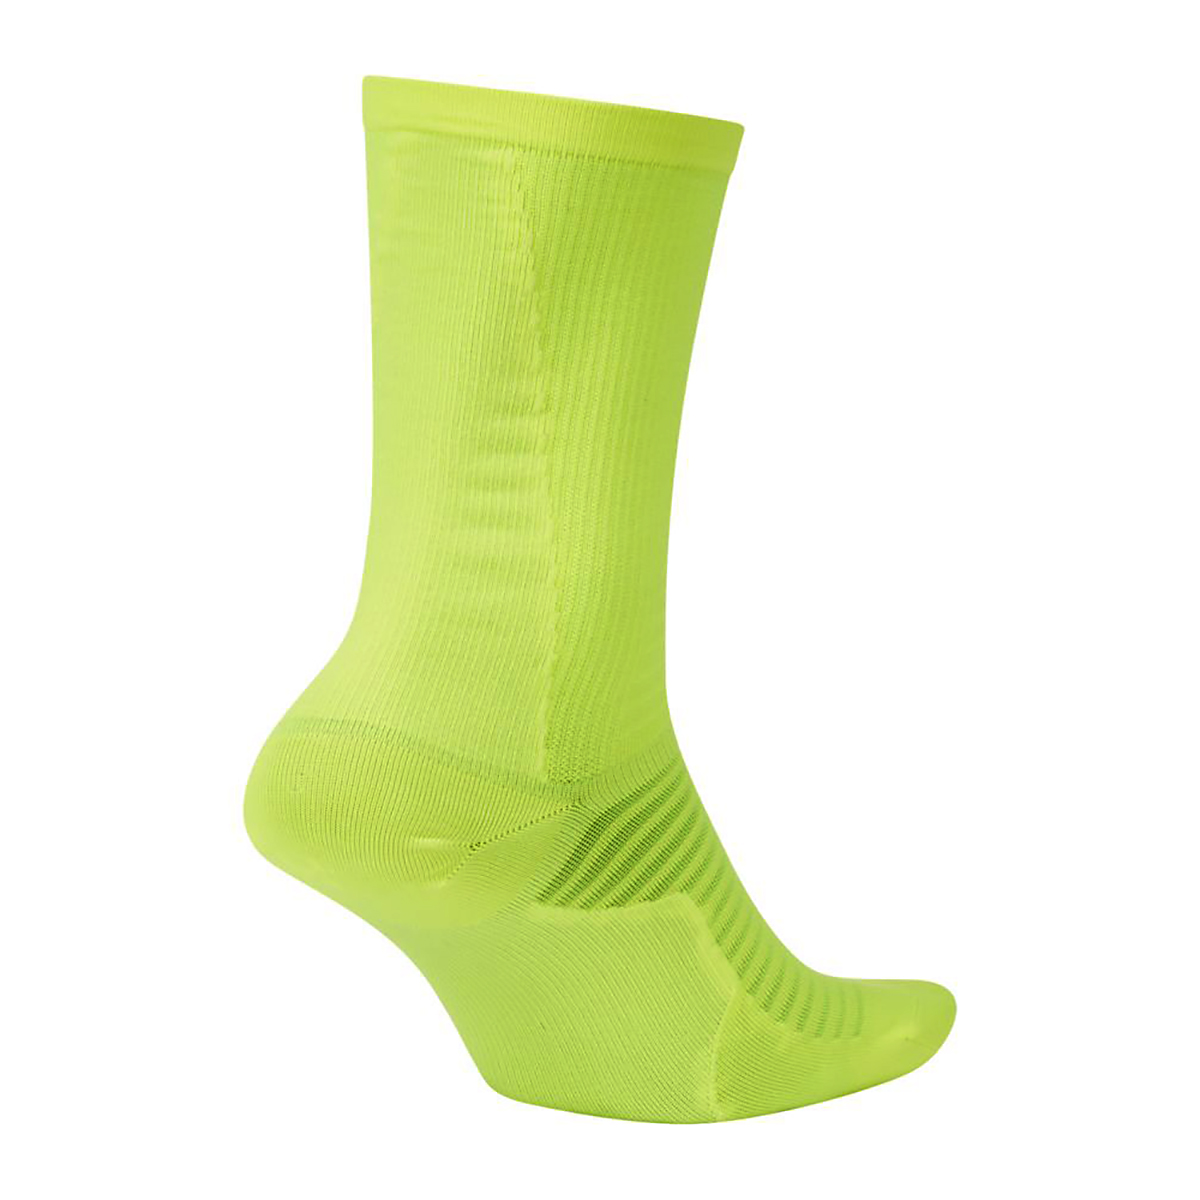 Nike Spark Lightweight Crew Running Socks - Color: Neon Yellow - Size: 4/5.5, Neon Yellow, large, image 2